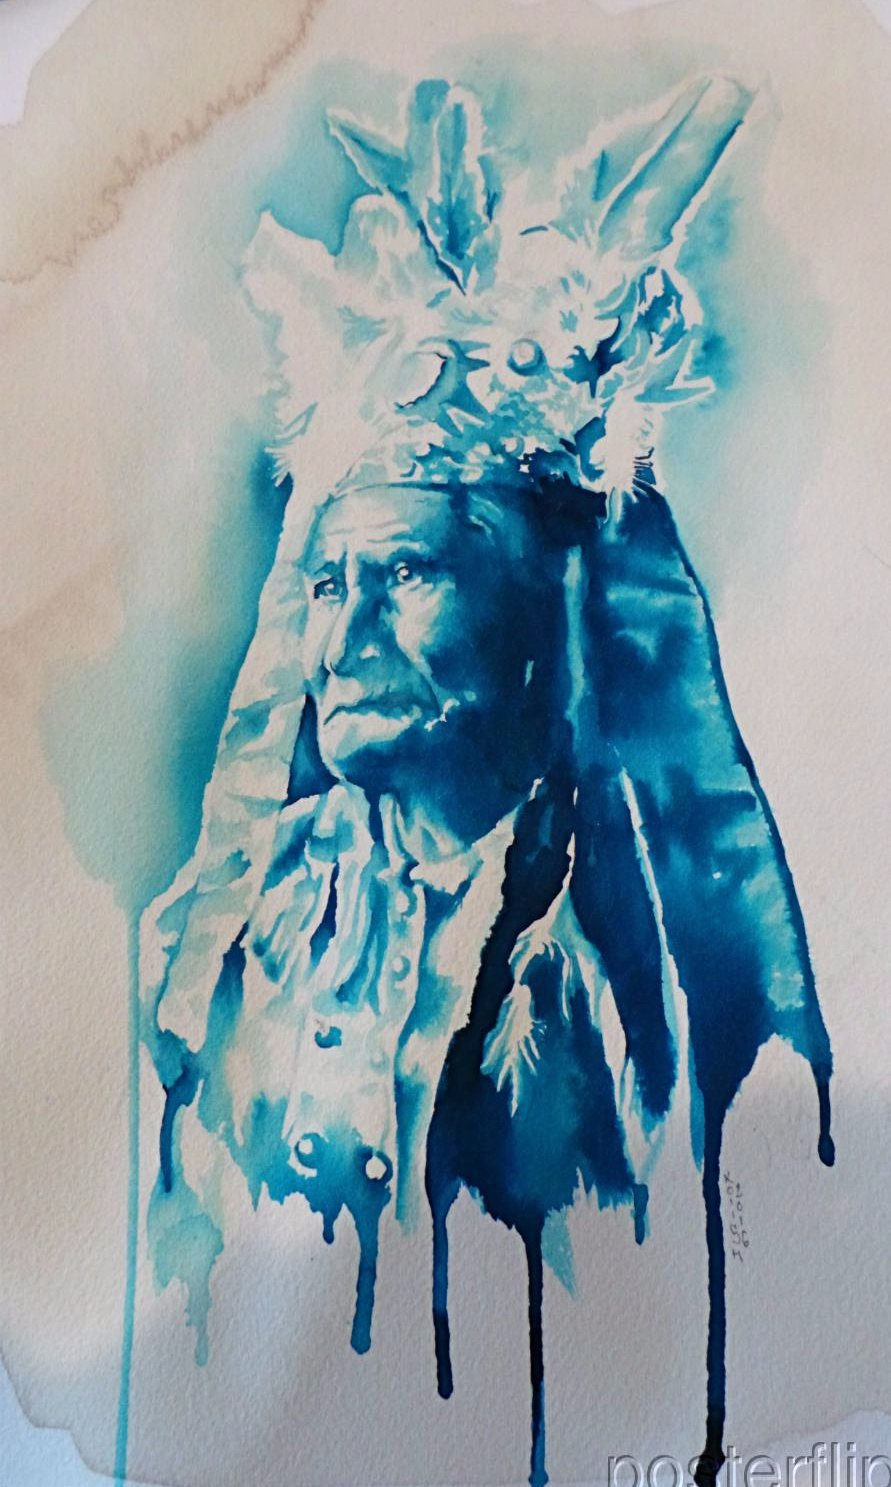 Koiish Watercolor Original painting 1/1 Indian Keystone Pipeline print